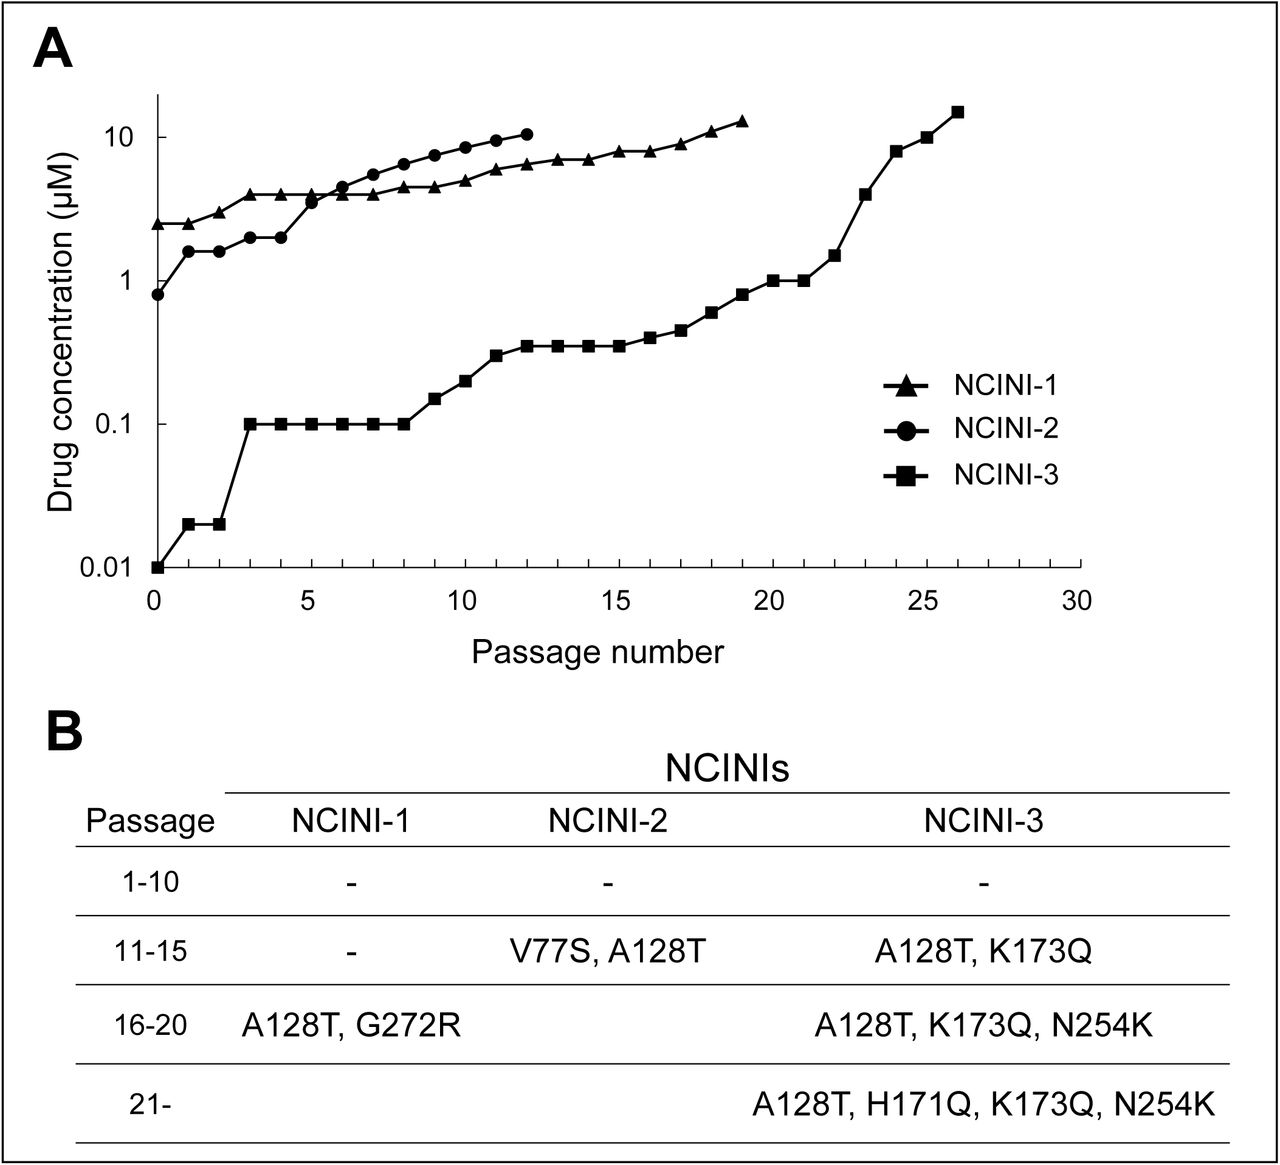 Emergence of NCINI-related resistance mutations in IN region. (A) HIV-1 NL4-3 propagated in MT-4 cells in the presence of increasing concentrations of NCINI-1 (▴), NCINI-2 (●), or NCINI-3 (▪), and the resistant viral selection to the NCINIs continues up to 10 µM. (B) NCINI-related resistance mutations in the IN region are shown at following passage ranges 1-10, 11-15, 16-20, and over 21. These mutations at each passage are identified from cellular DNA in the infected MT-4 cells with the NCINI-related resistant HIV-1.